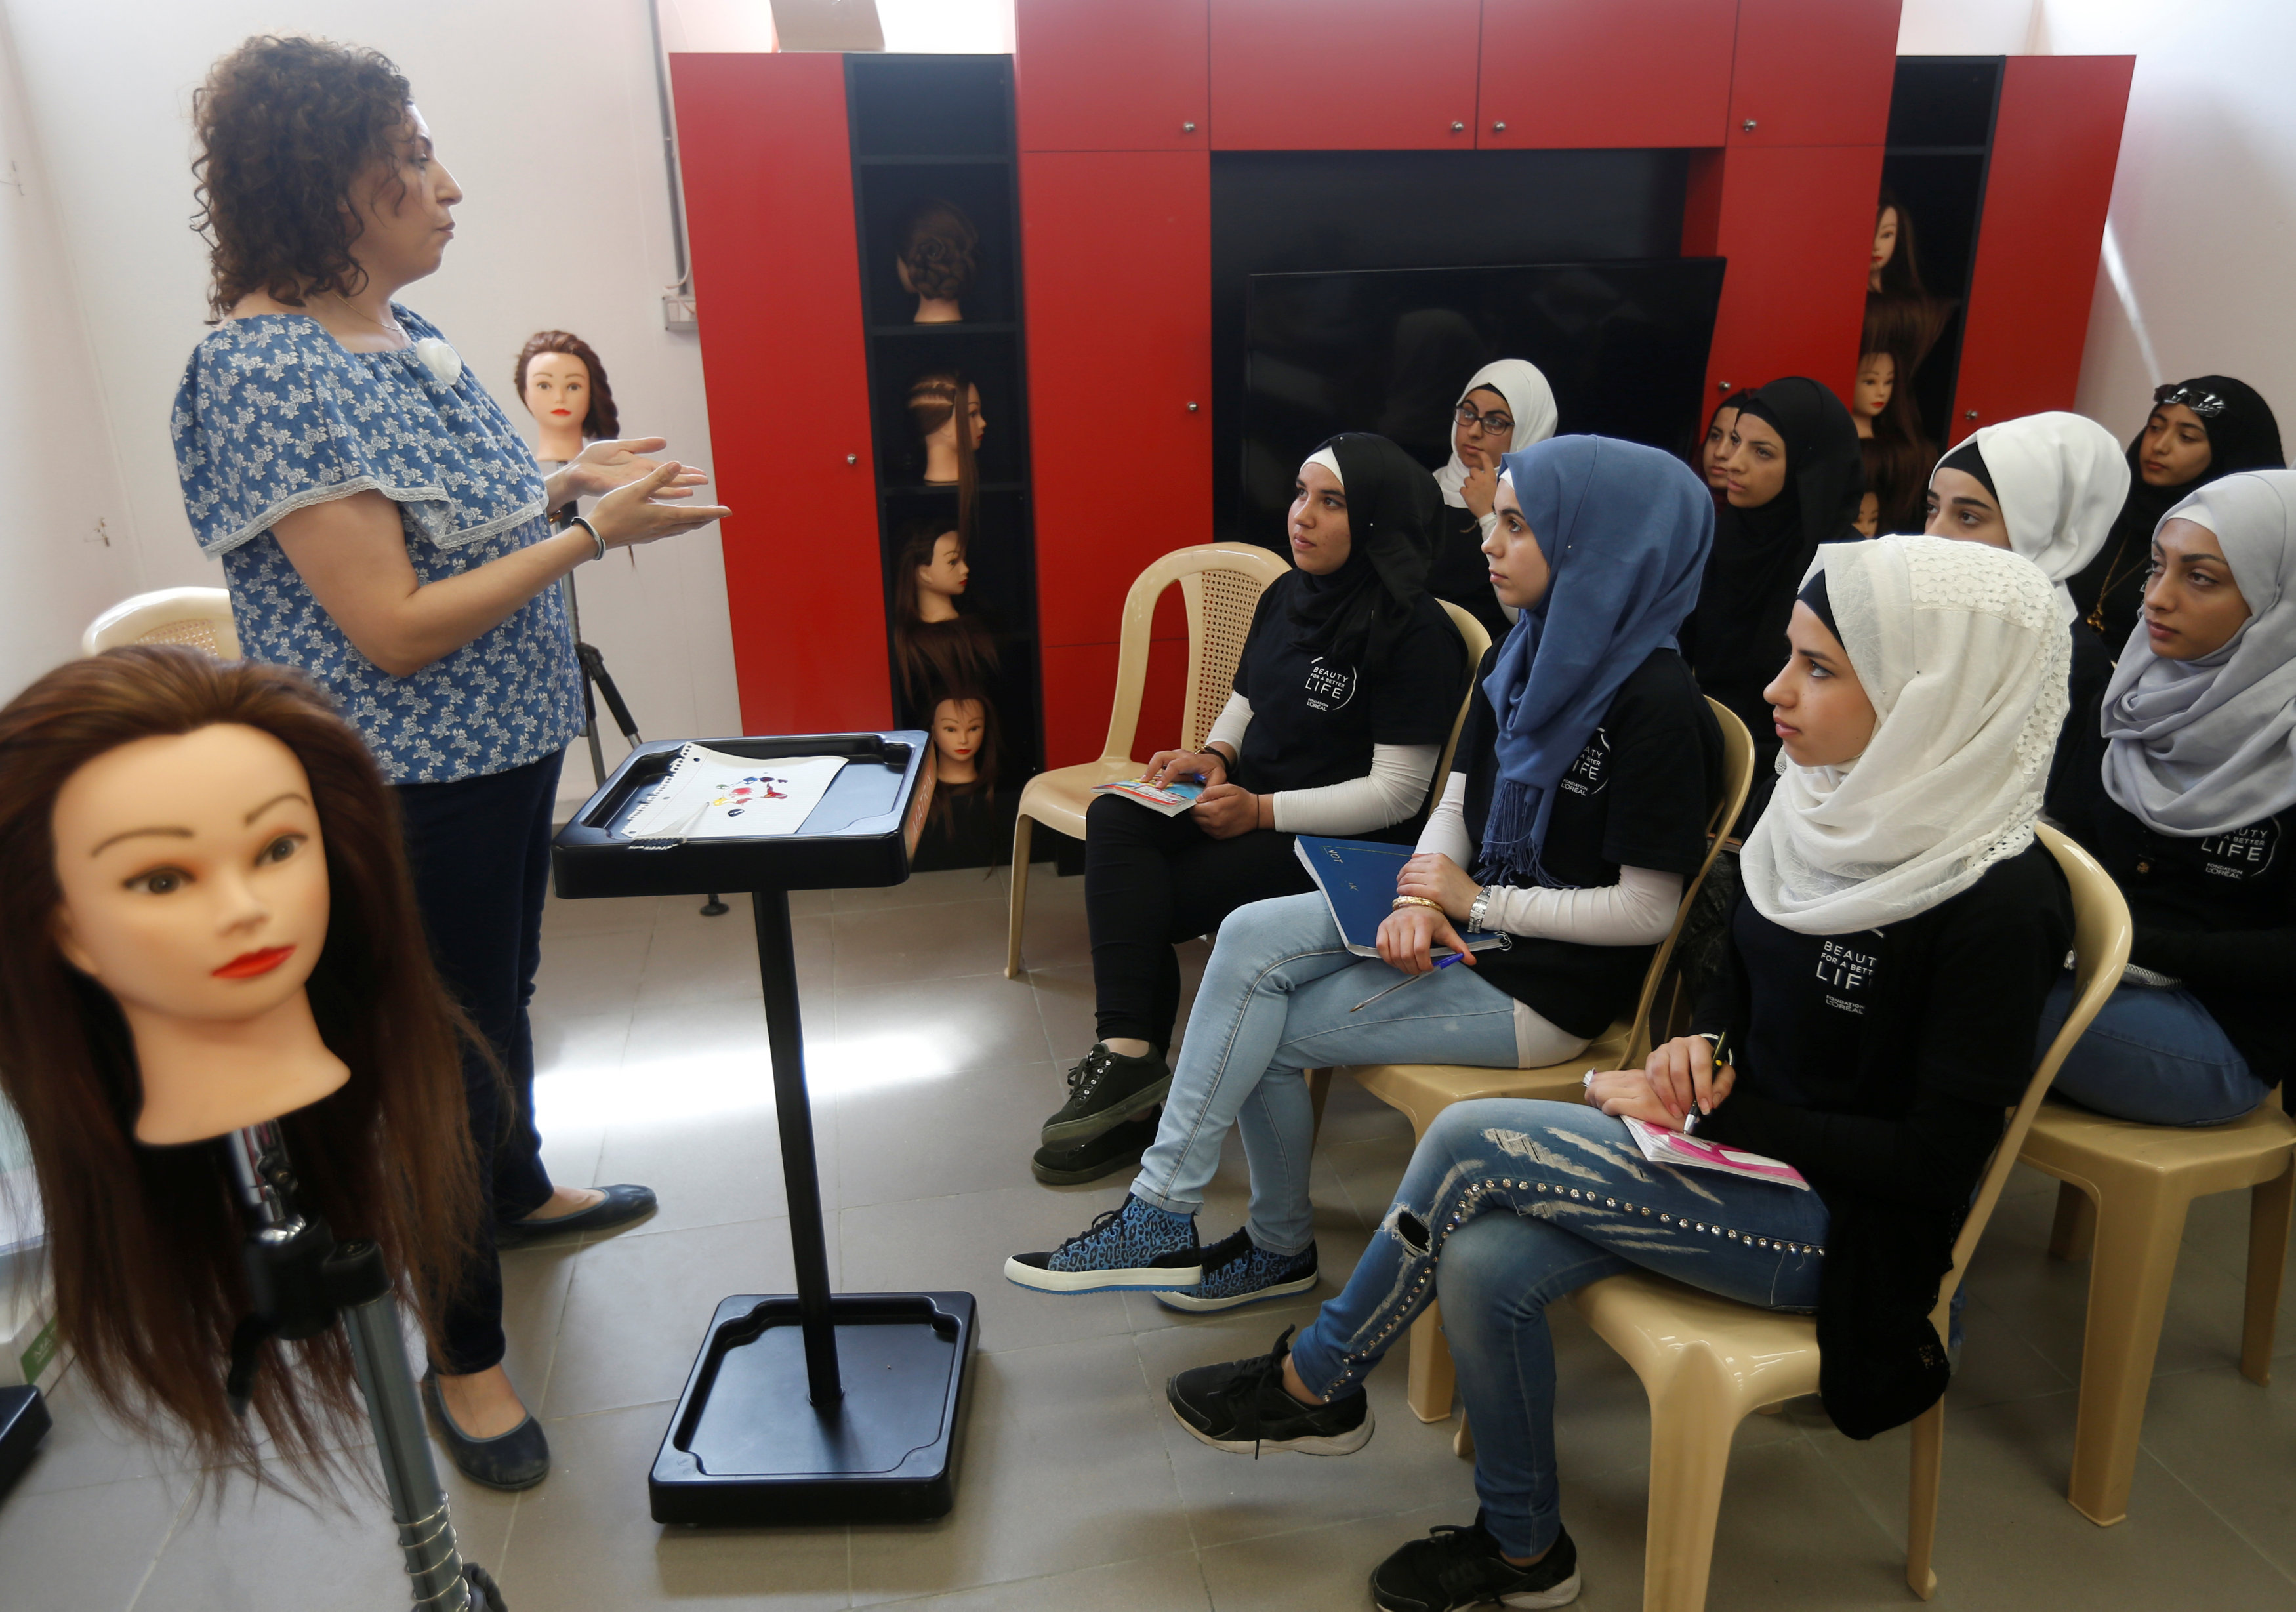 The women's hairdressing instructor gestures as she talks at a training salon in Bar Elias